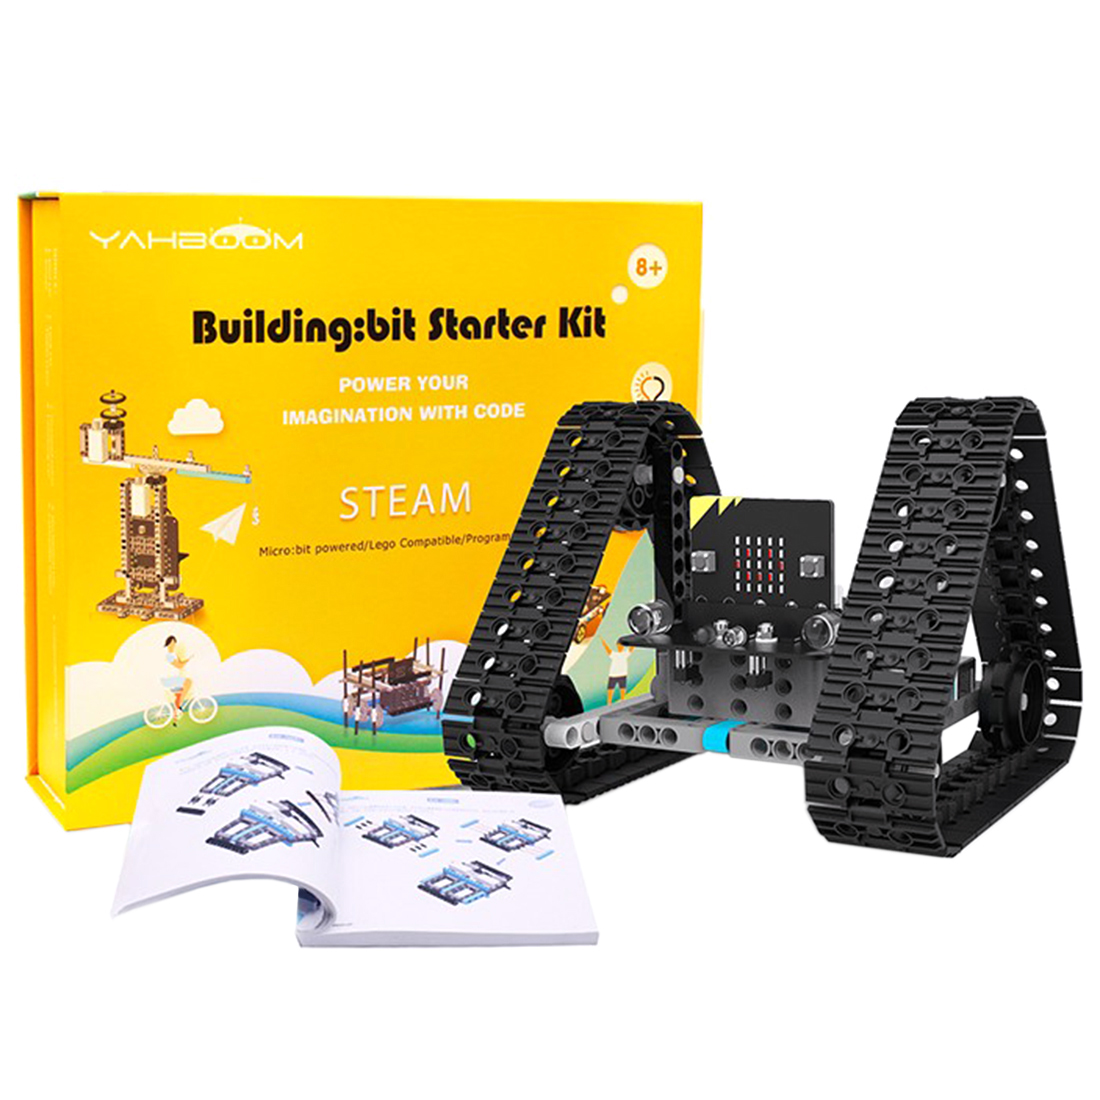 Micro:bit STEM Robotics Kits For Kids Programmable  Microbit Robots DIY Toy Car With Tutorial Tracking Scientific Education